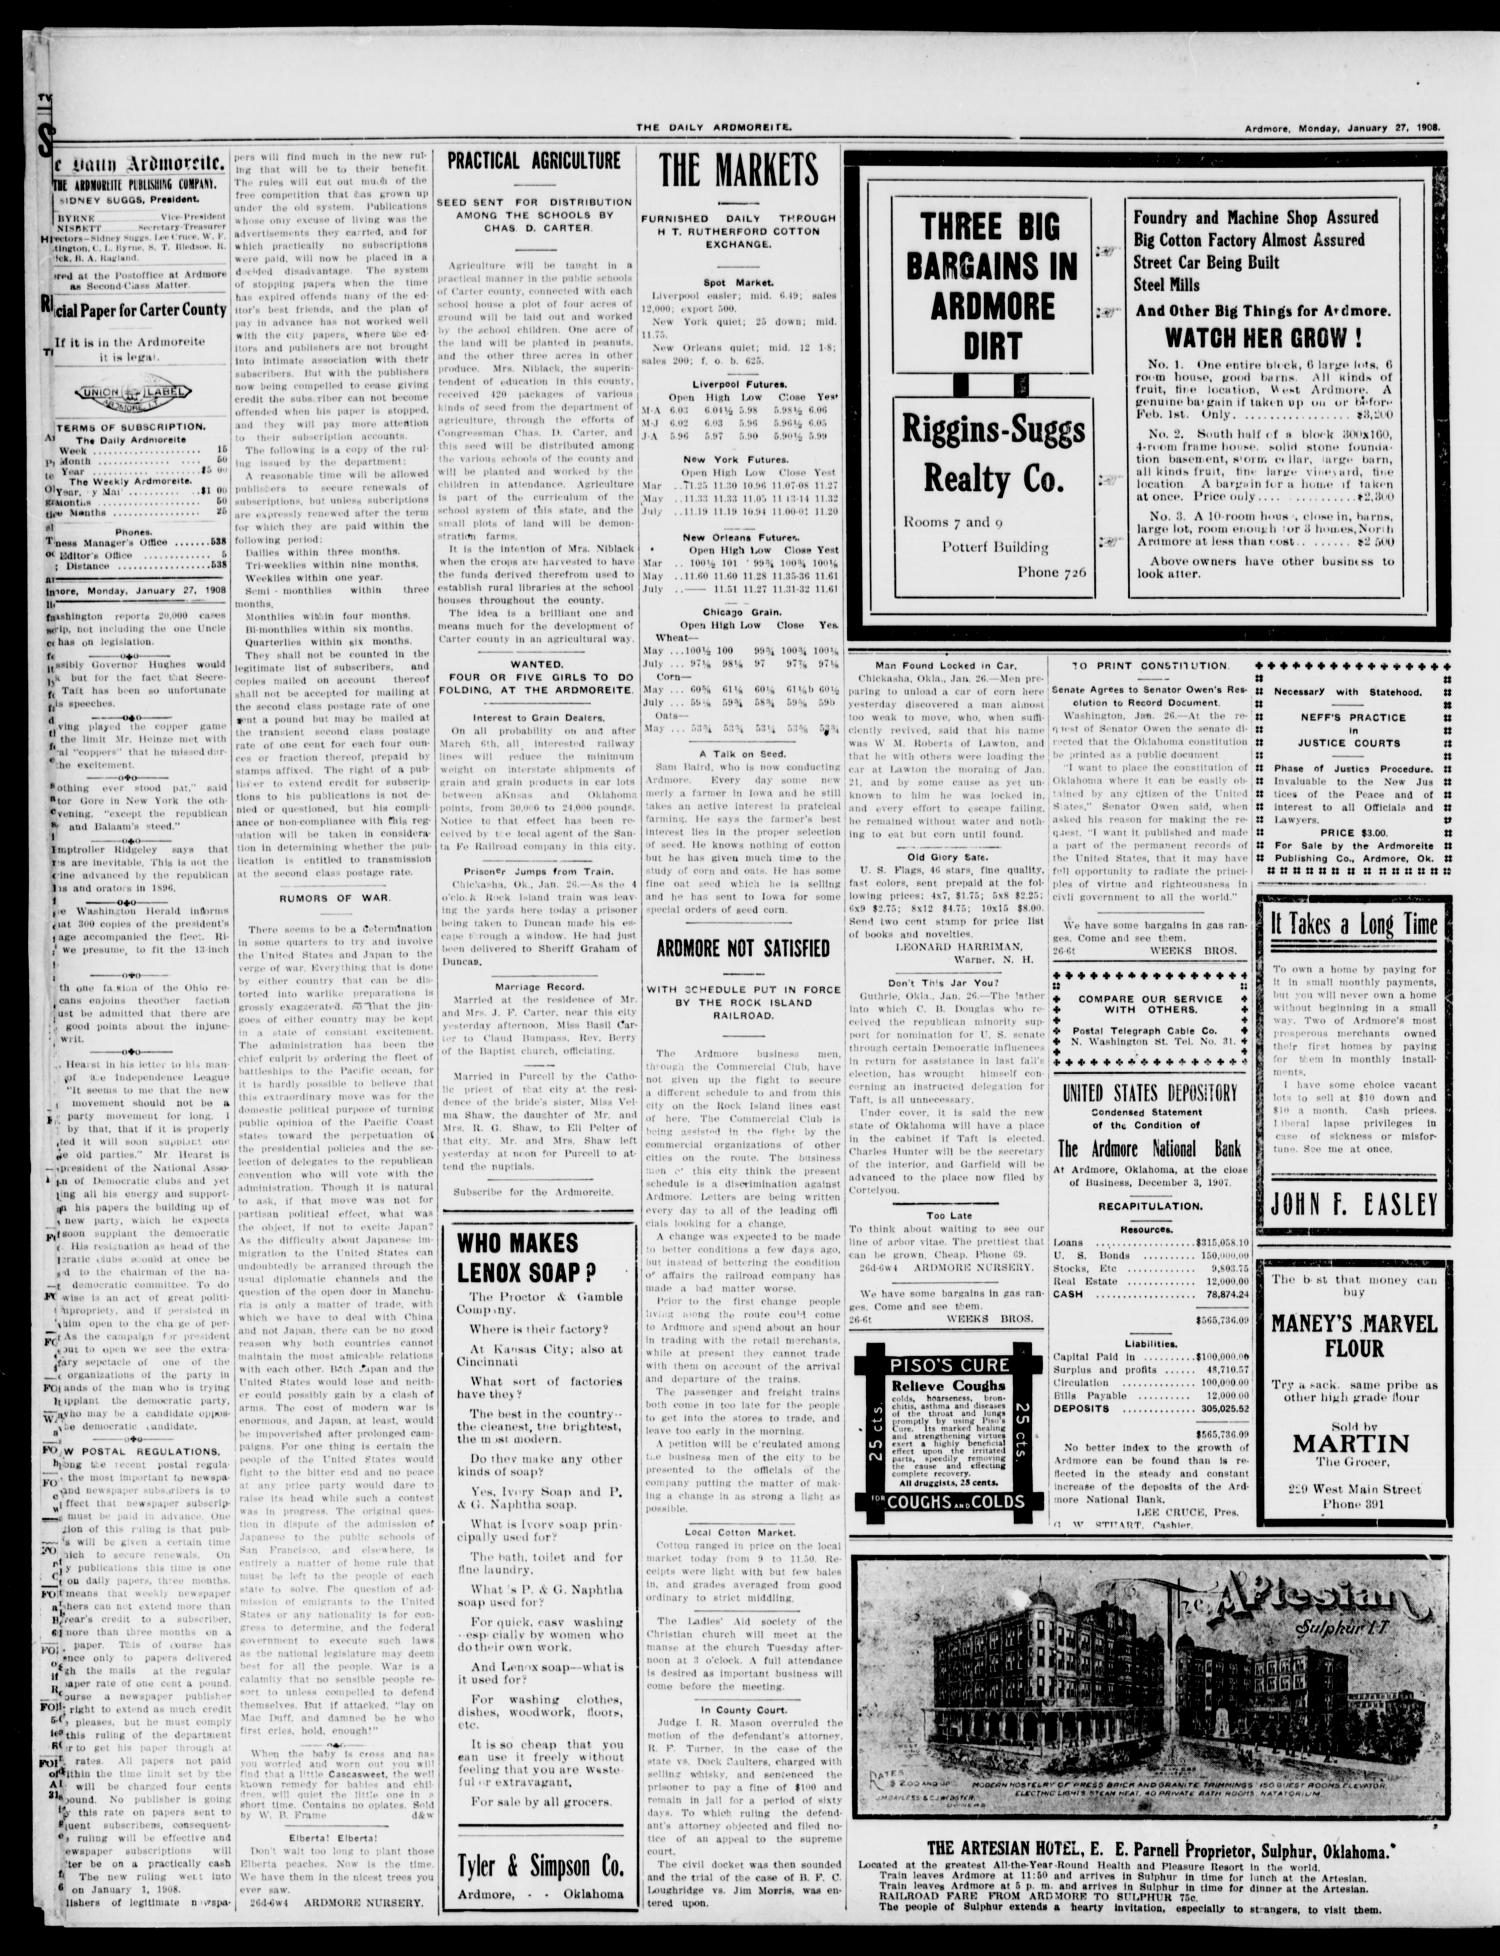 The Daily Ardmoreite. (Ardmore, Okla.), Vol. 14, No. 209, Ed. 1, Monday, January 27, 1908                                                                                                      [Sequence #]: 2 of 6